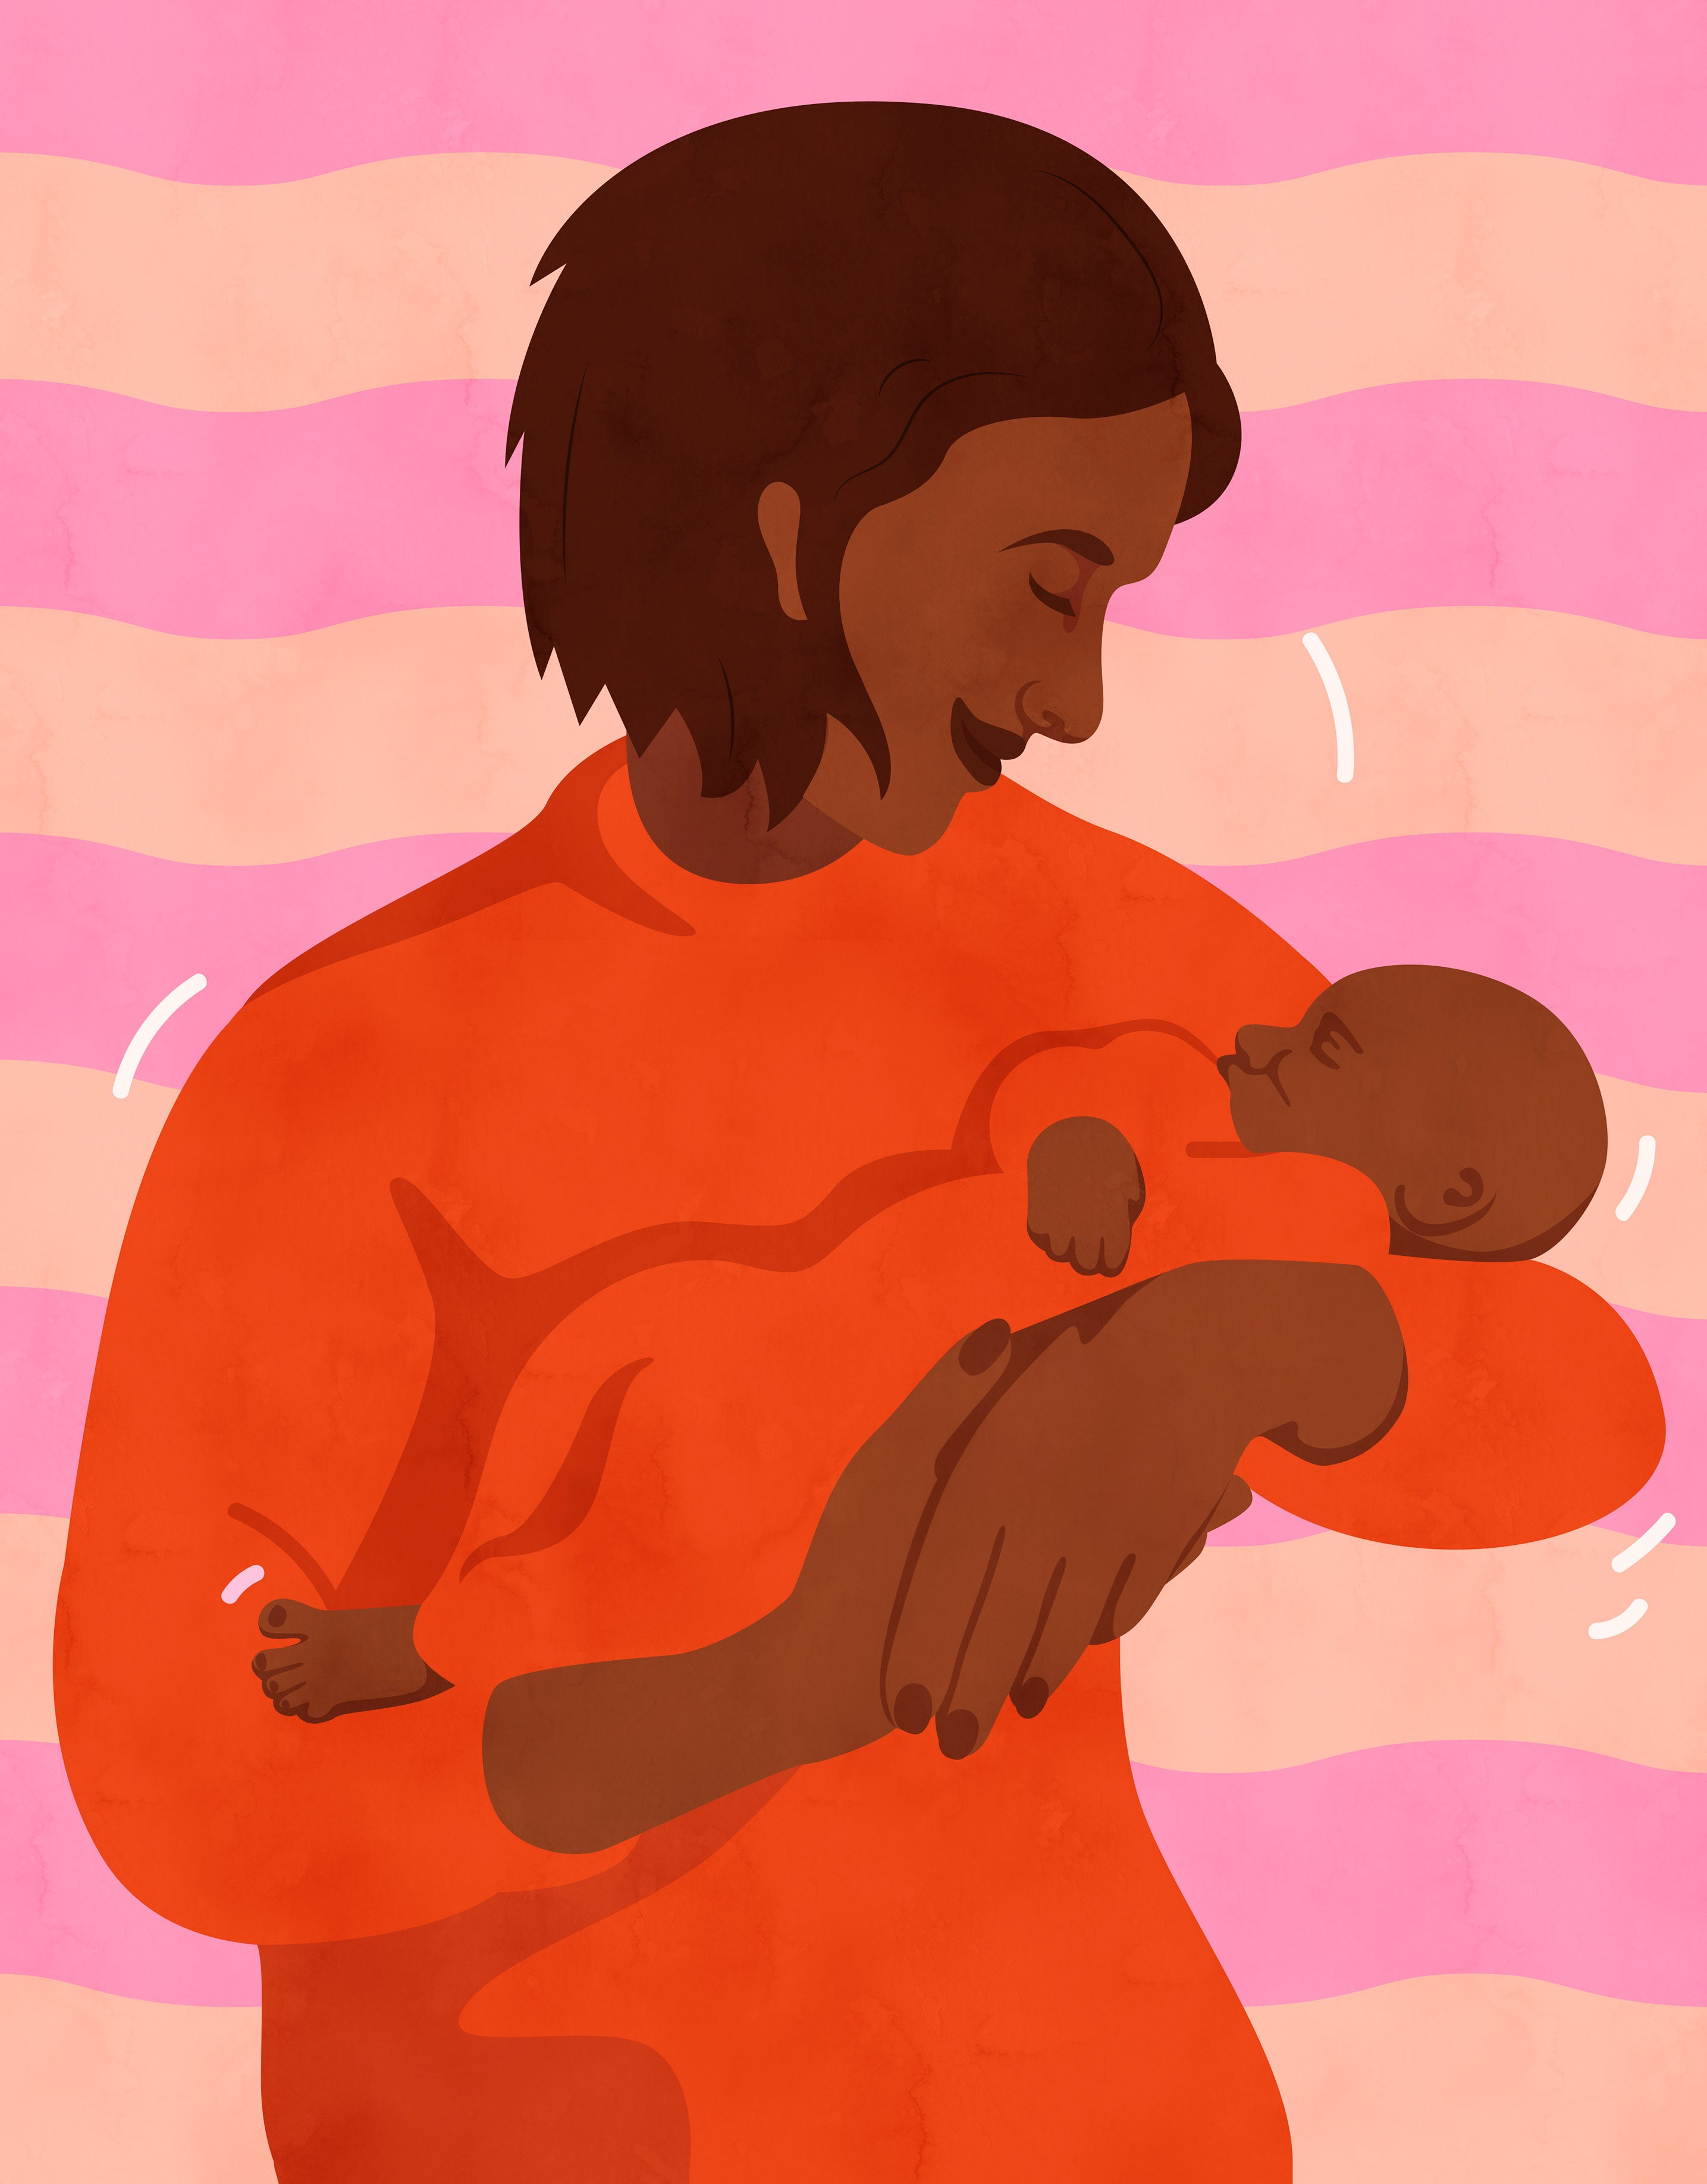 A Matter Of Life & Death: Why Are Black Women In The U.S. More Likely To Die During Or After Childbirth?